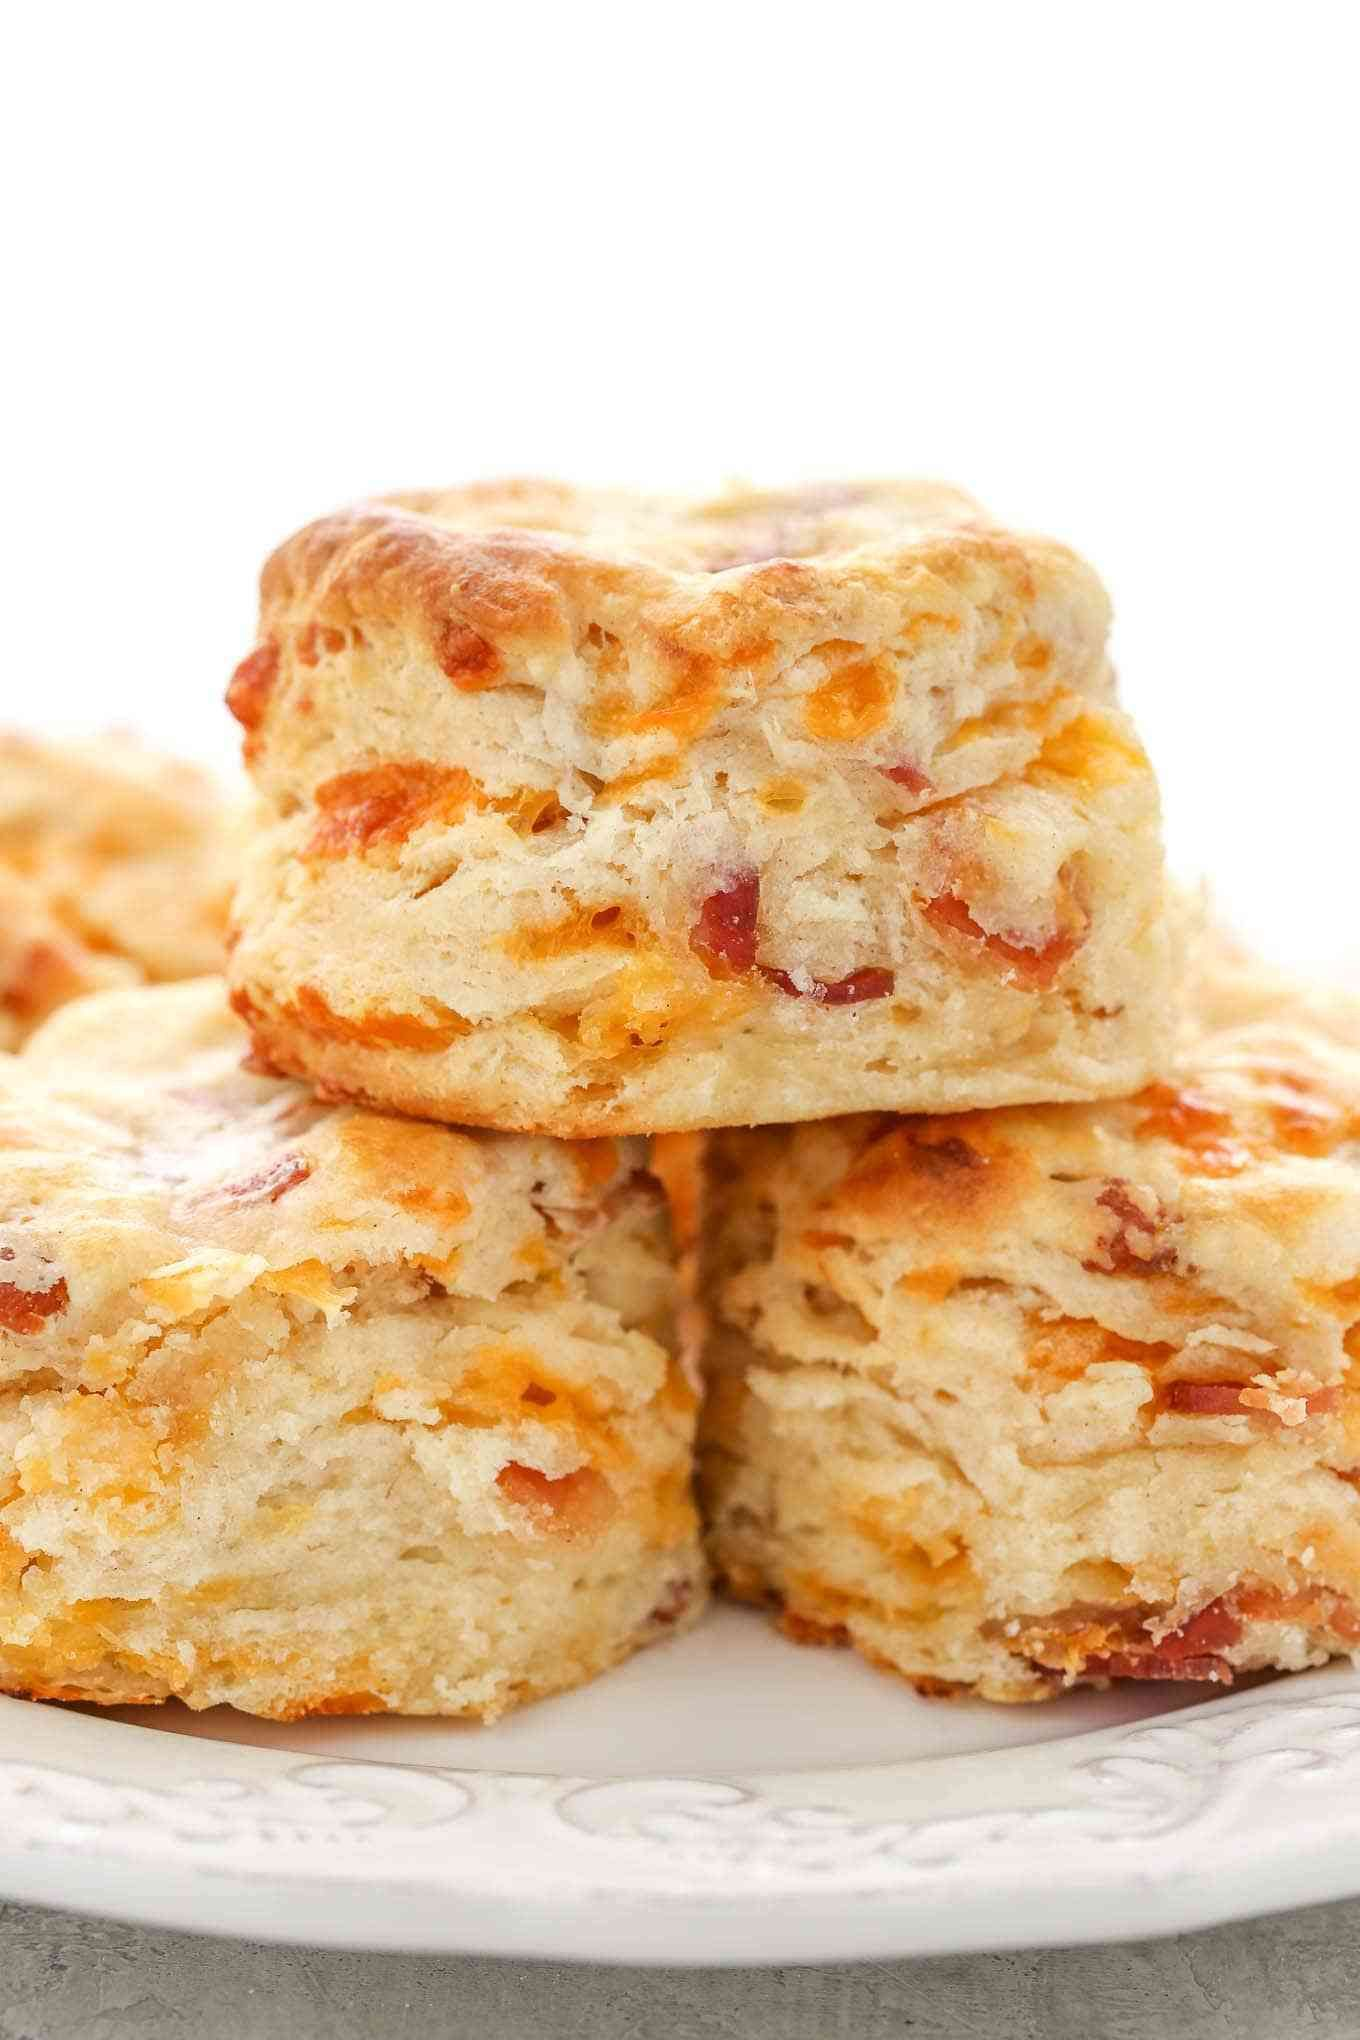 Soft Tall Buttery And Flaky Buttermilk Biscuits Filled With Cheddar Cheese And Bacon These Bacon Cheddar Bisc Biscuit Recipe Cheddar Biscuits Bacon Cheddar